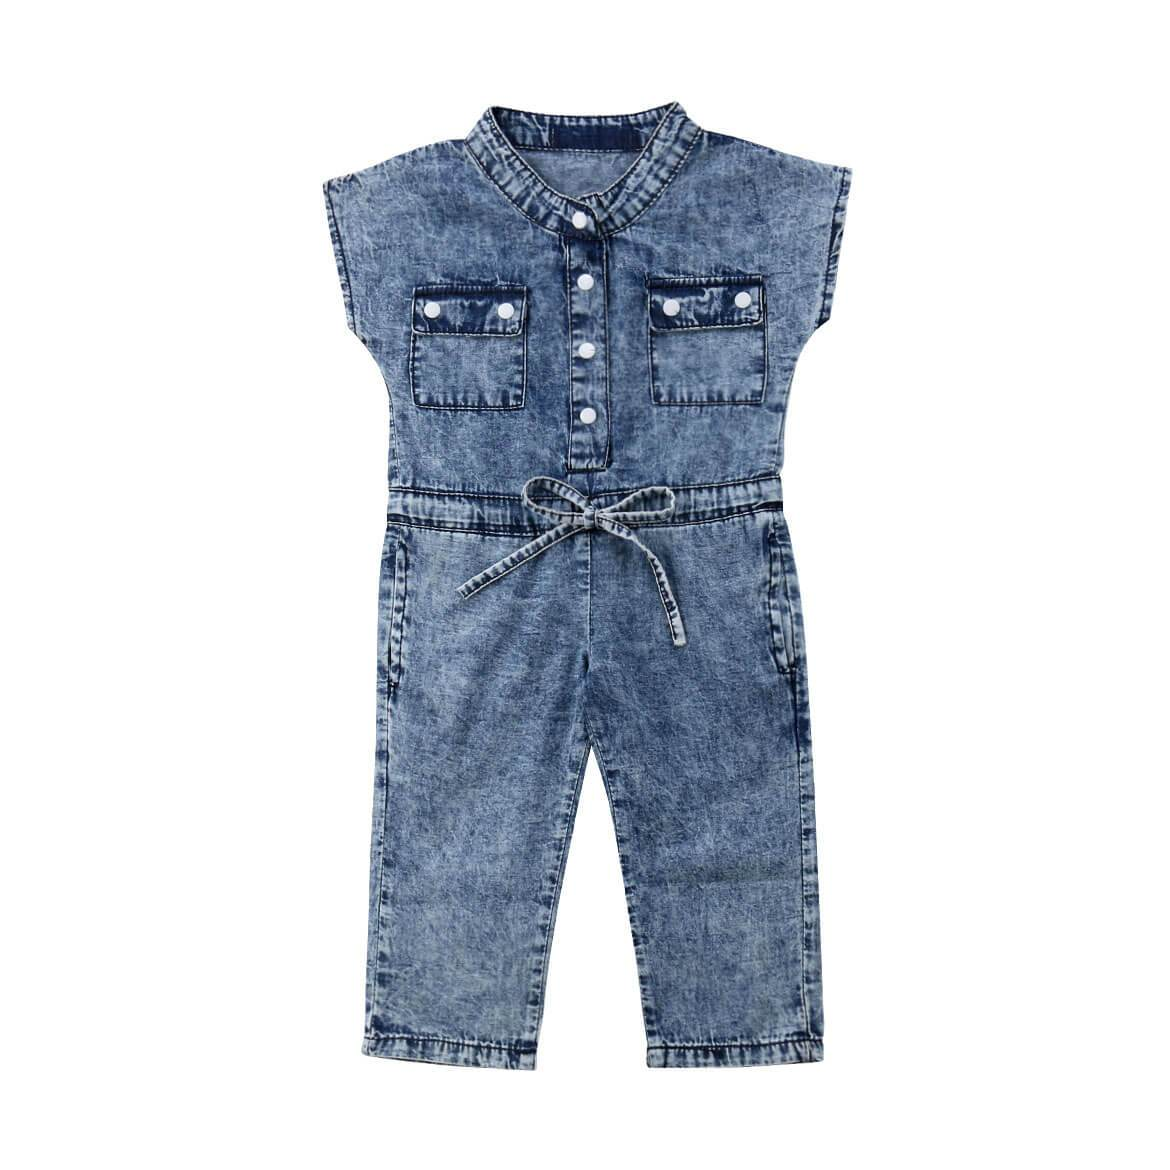 Denim Jumpsuit - The Trendy Toddlers